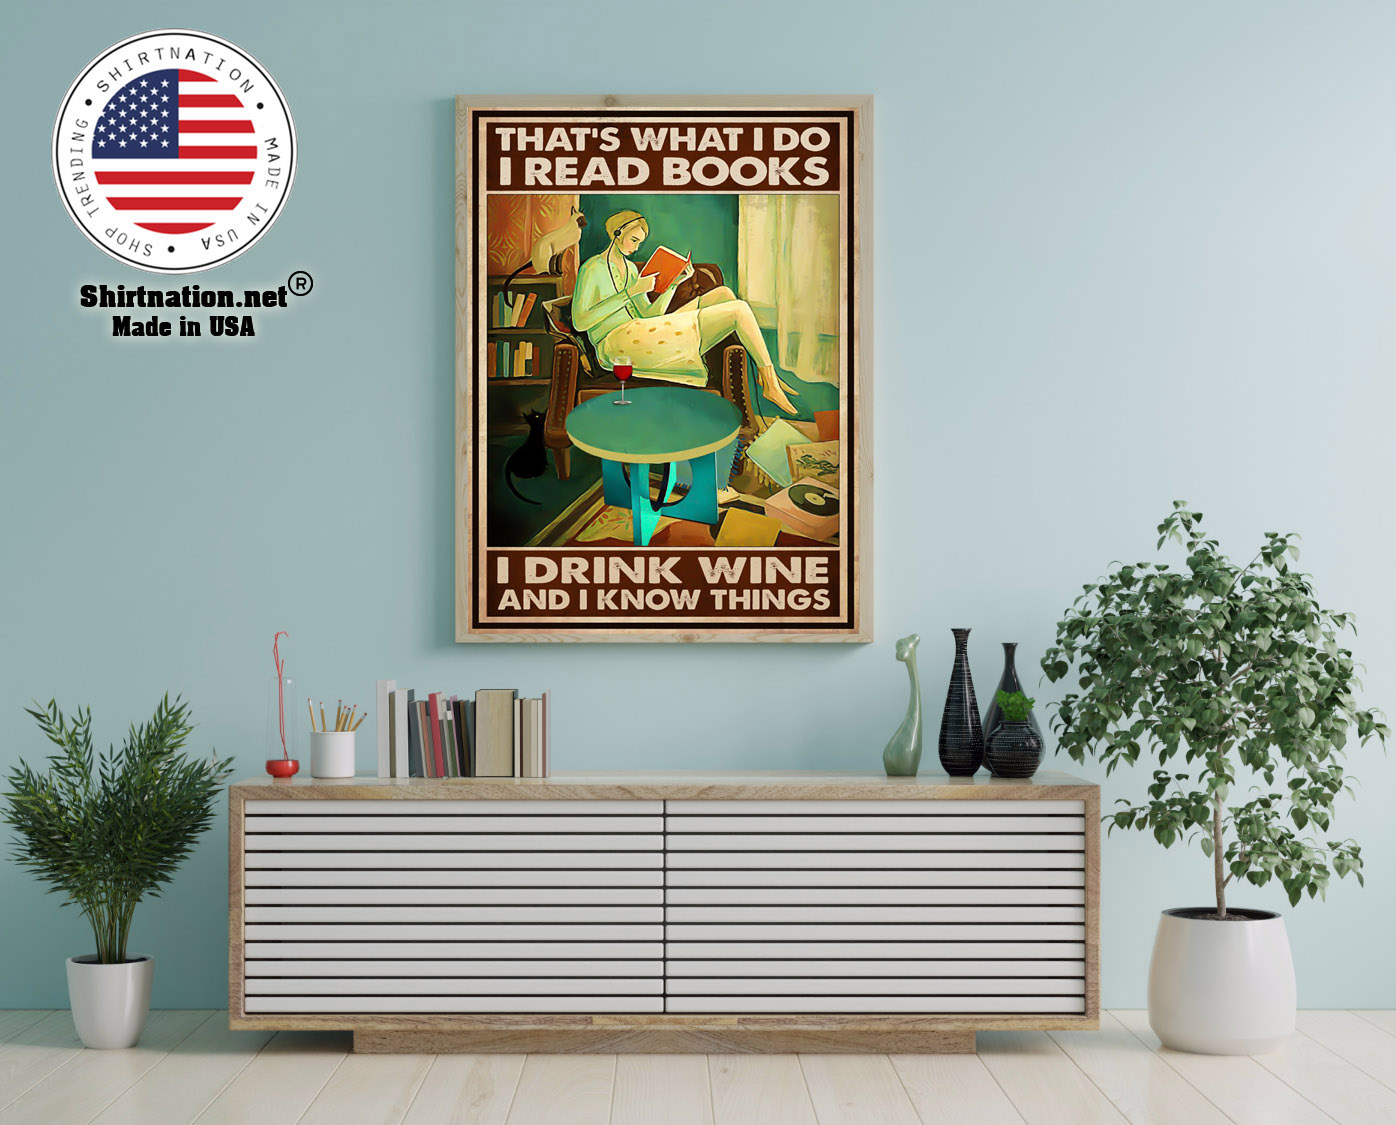 Thats what I do I read books I drink wine and I know things poster 12